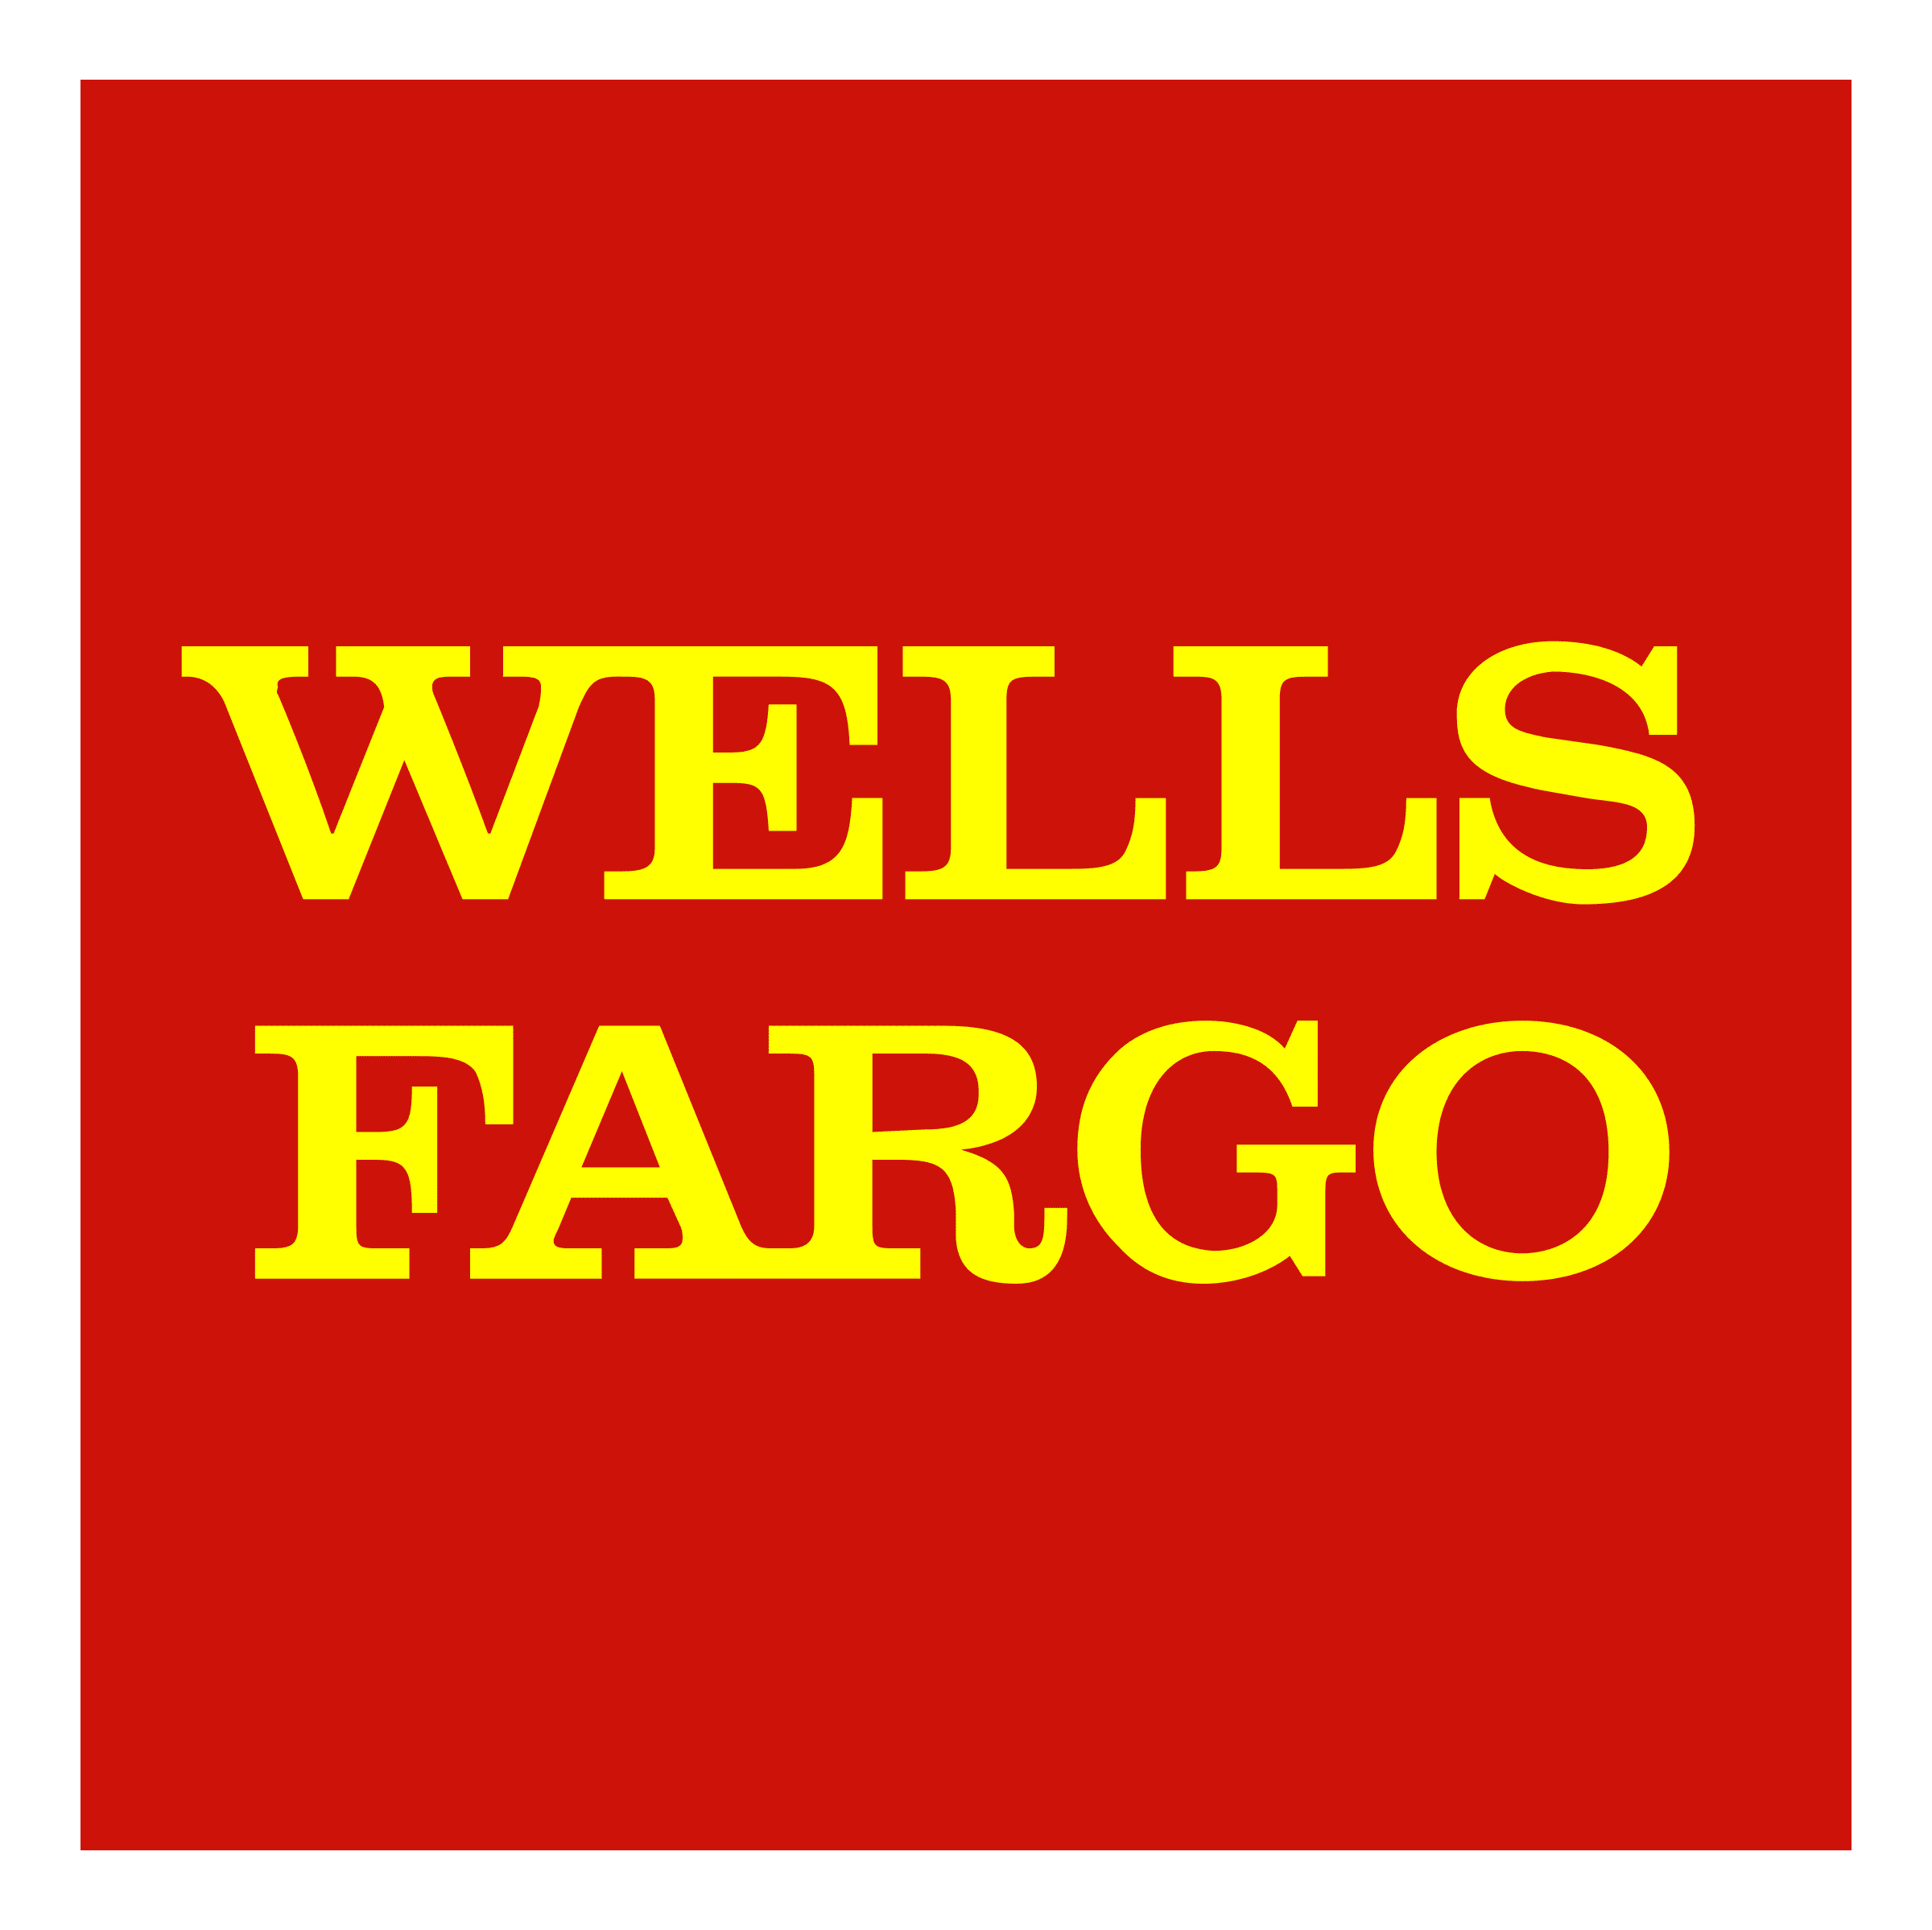 https://secureservercdn.net/50.62.198.97/ojo.737.myftpupload.com/wp-content/uploads/2019/04/wells-fargo-logo-transparent.png